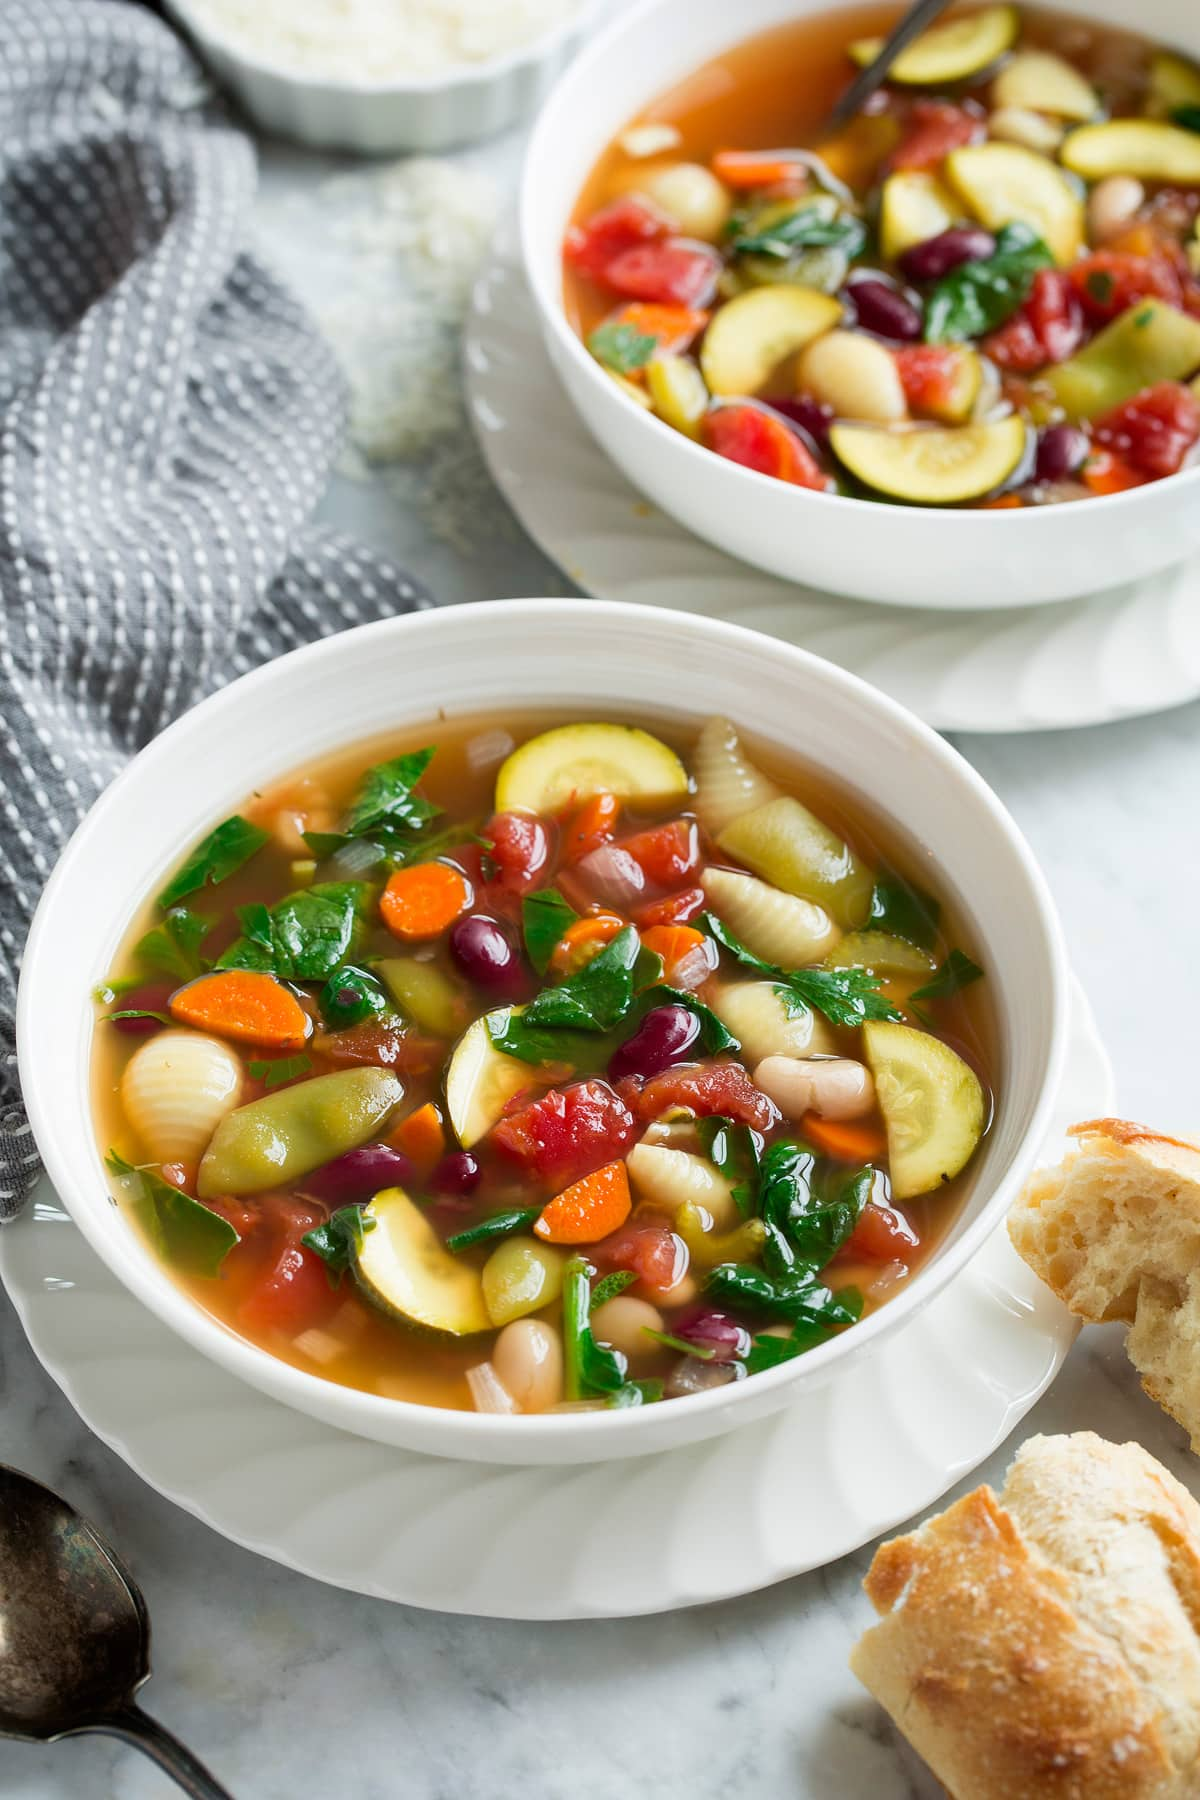 Minestrone Soup (Slow Cooker or Stovetop)